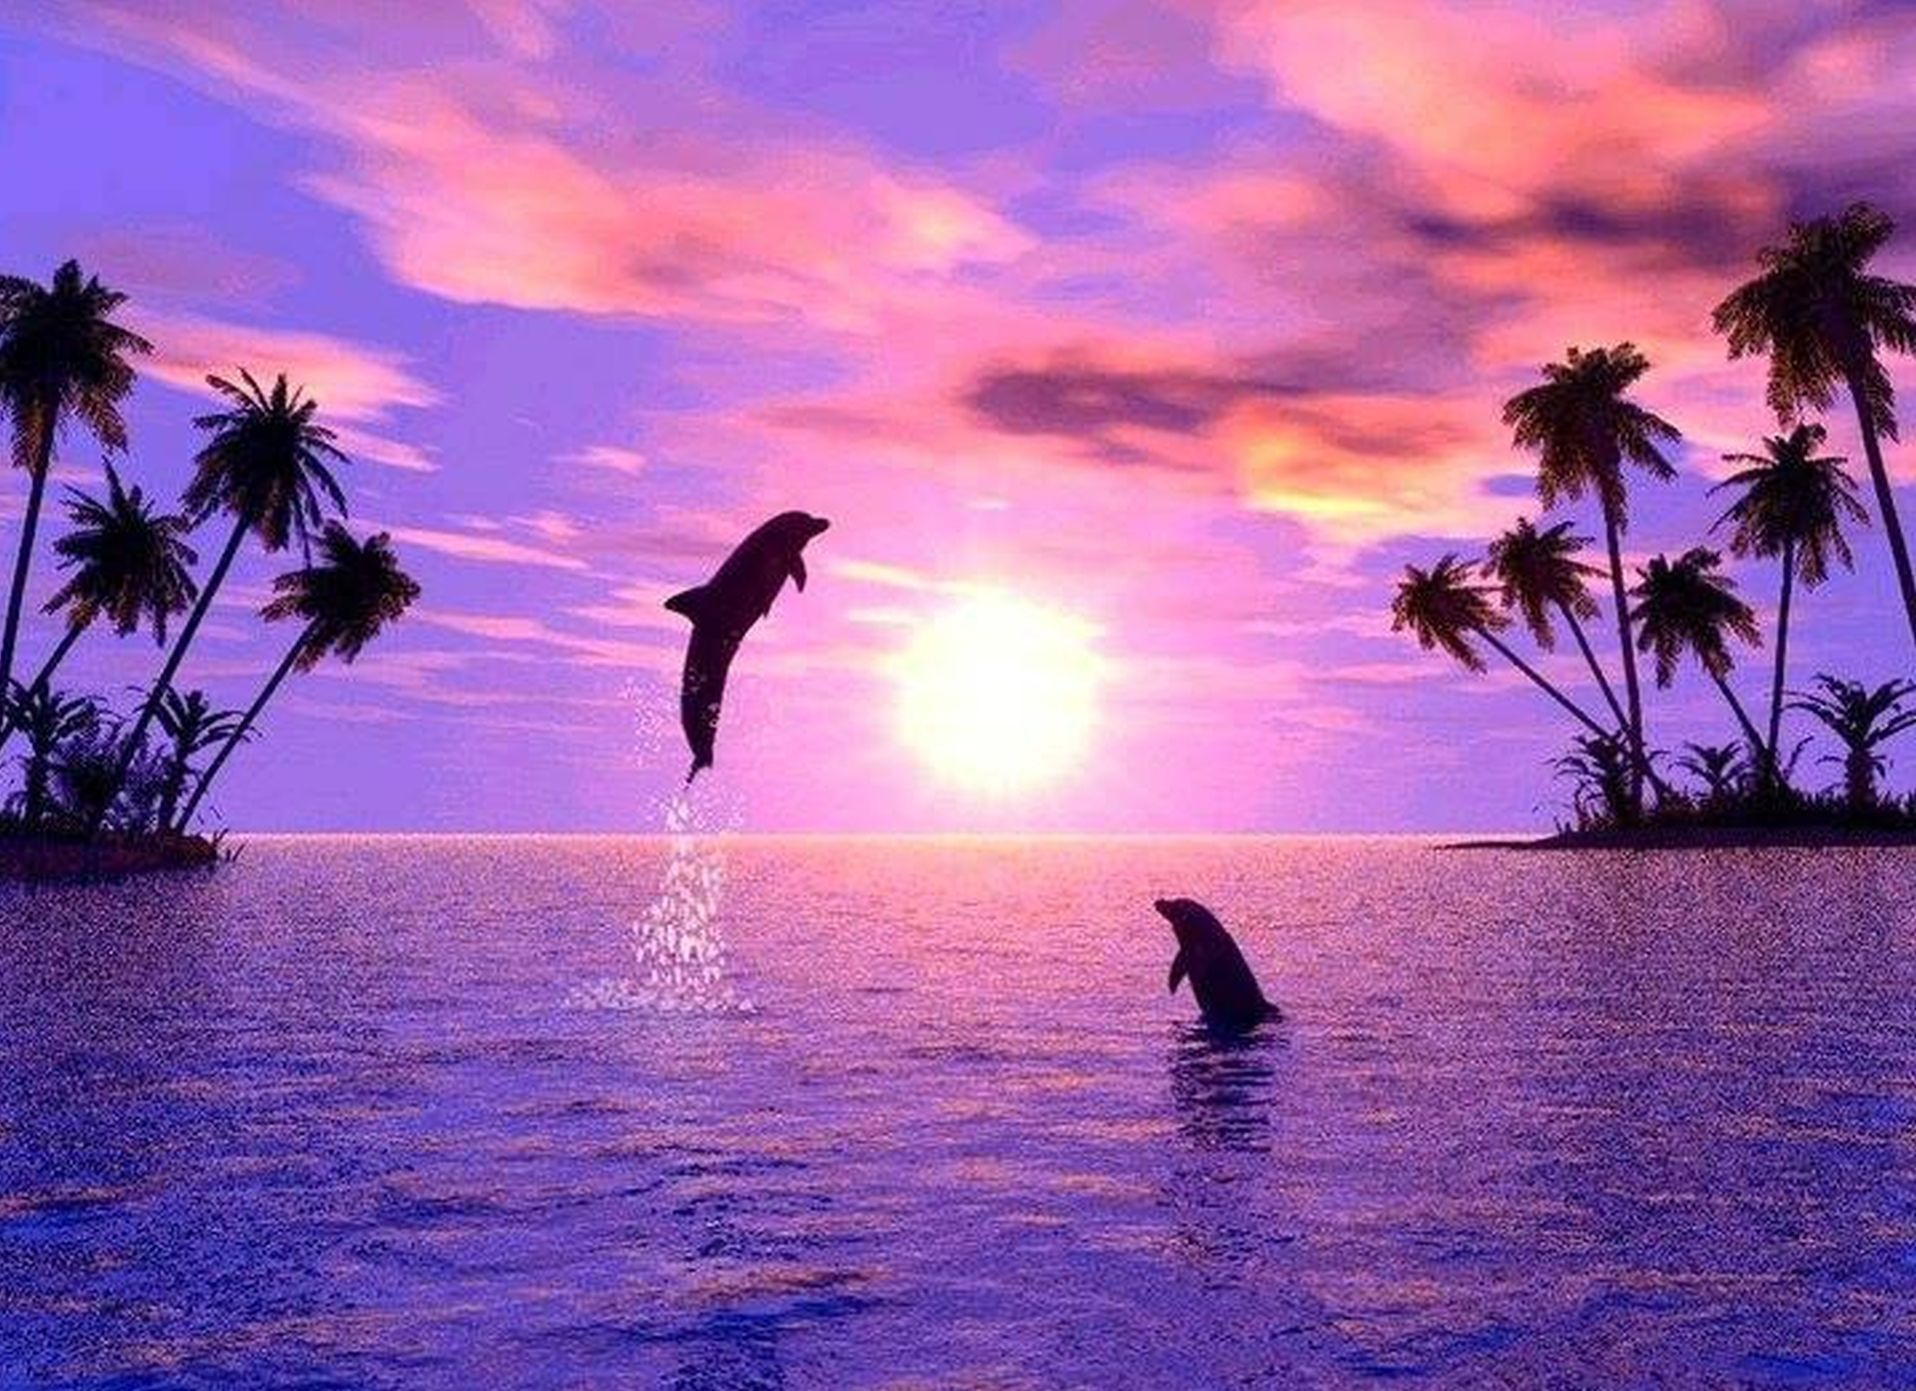 Cute Dolphins Wallpapers Top Free Cute Dolphins Backgrounds Wallpaperaccess Hd wallpaper dolphins sunset sky pink